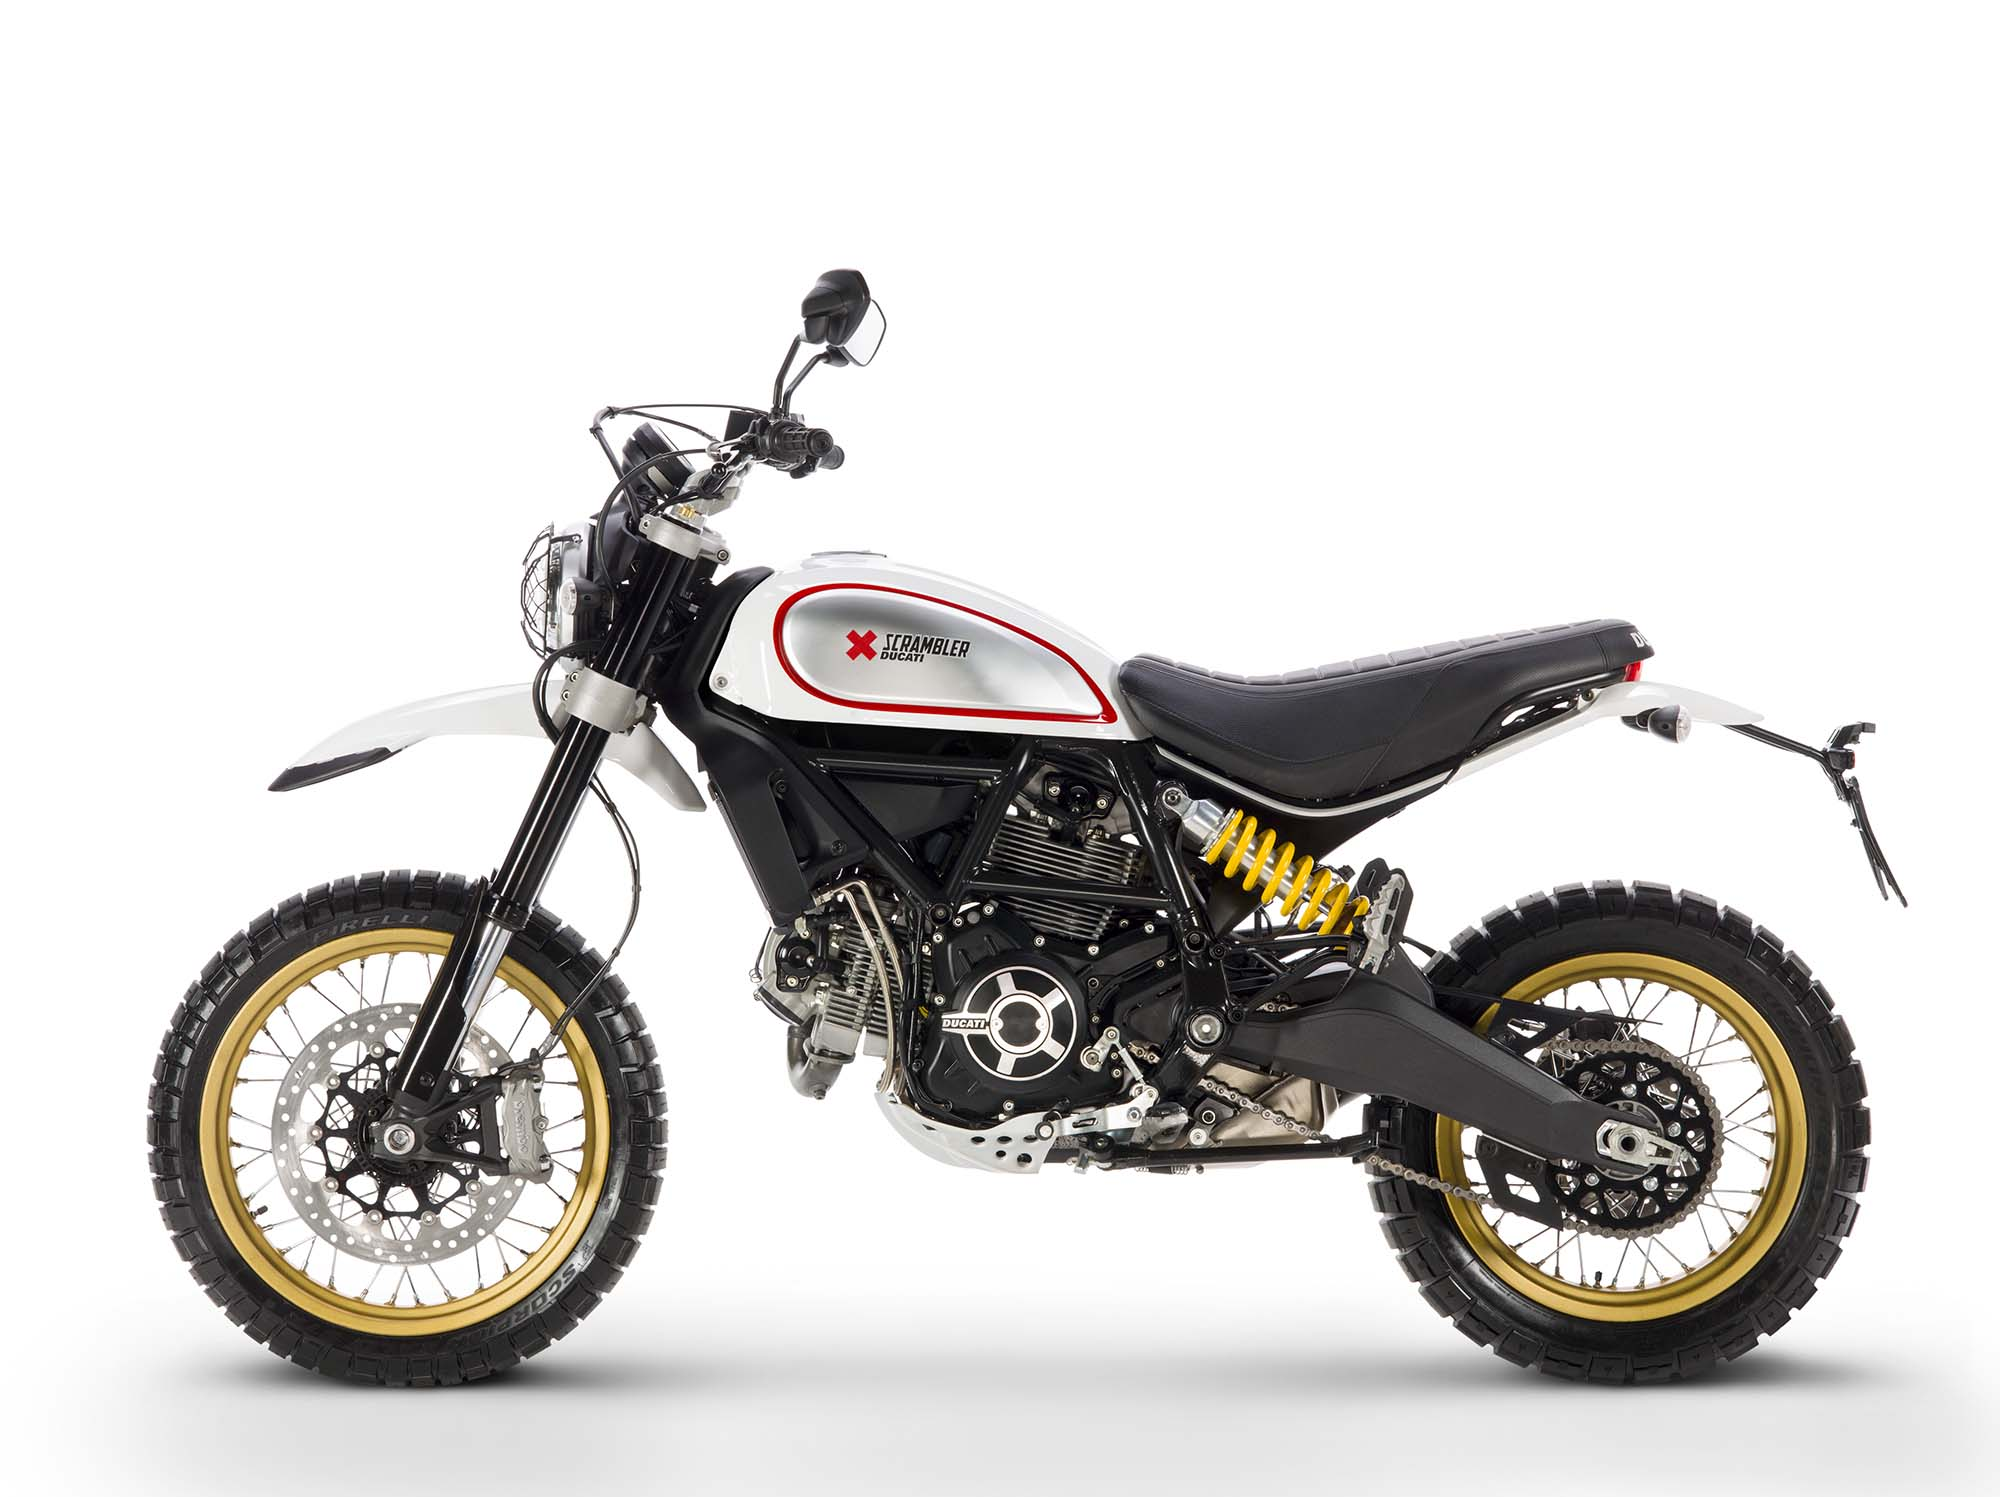 ducati scrambler desert sled got roost. Black Bedroom Furniture Sets. Home Design Ideas